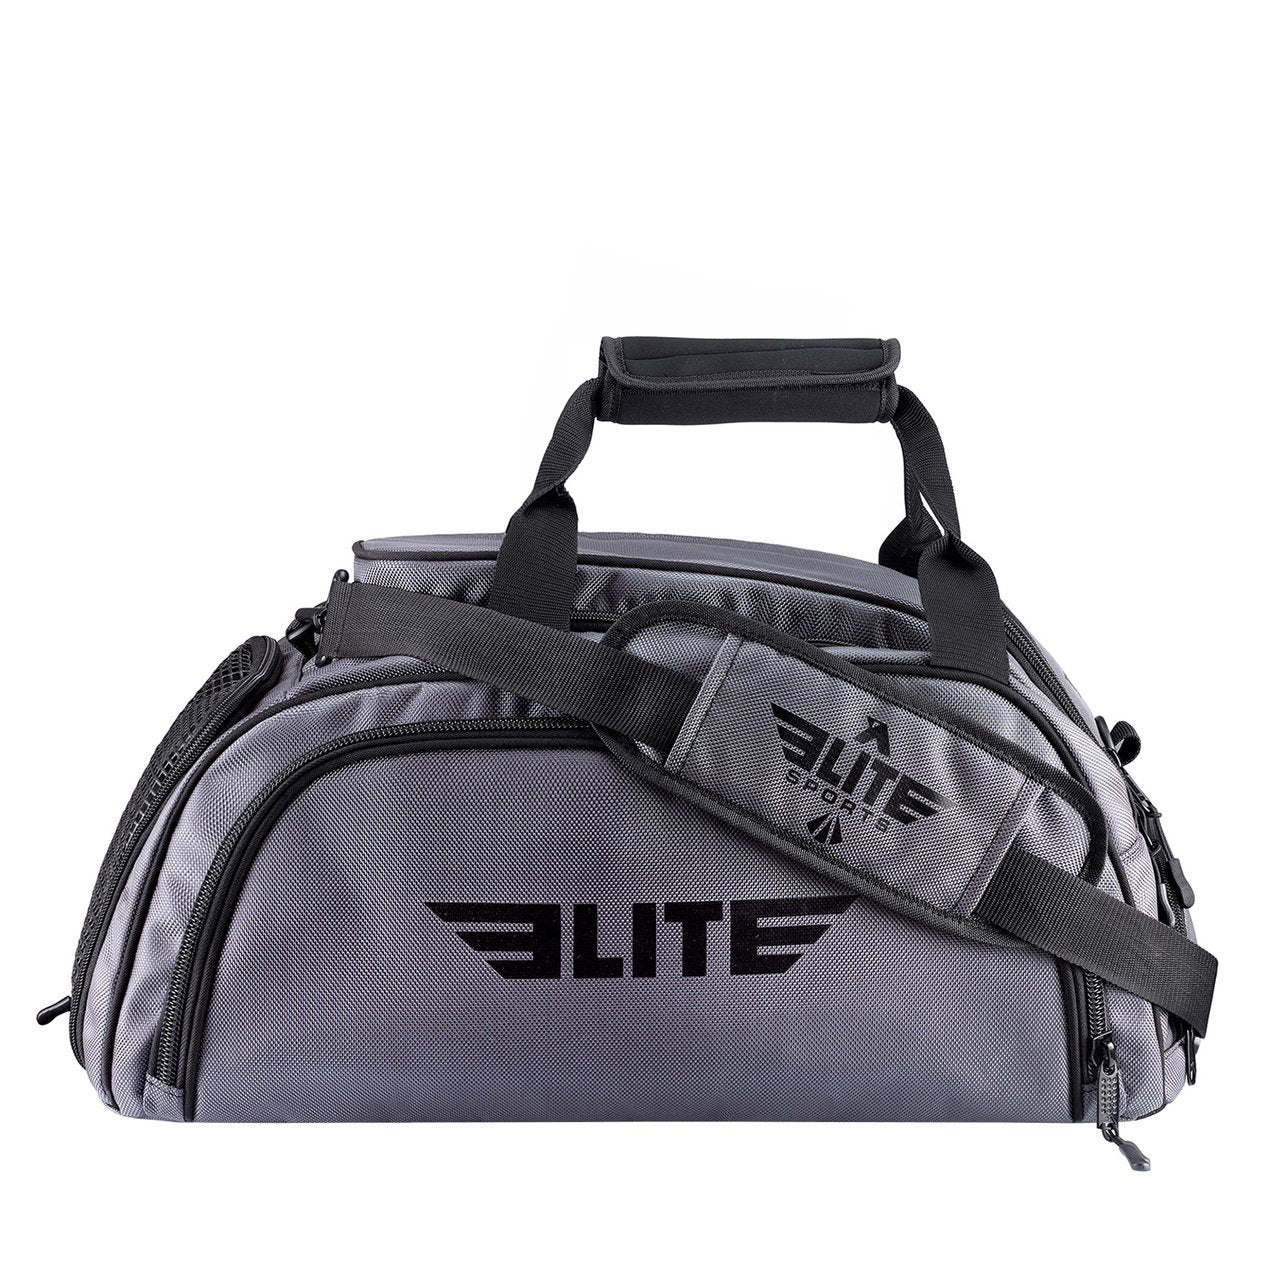 Elite Sports Warrior Series Gray Medium Duffel Training Gear Gym Bag & Backpack